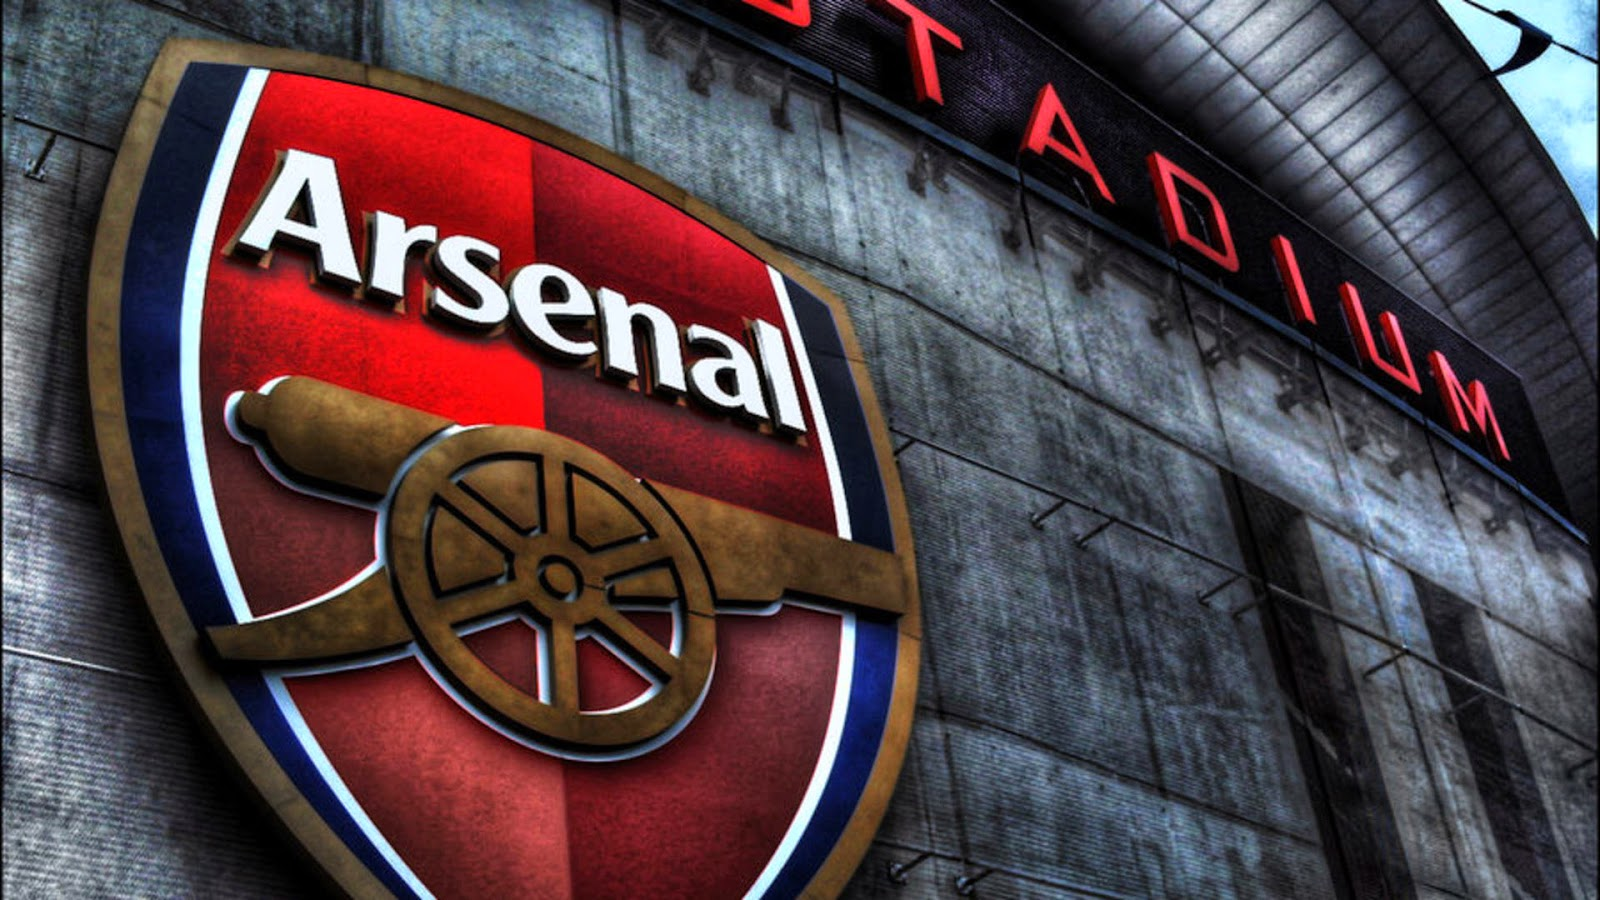 Arsenal to face Manchester United in FA Cup fourth round